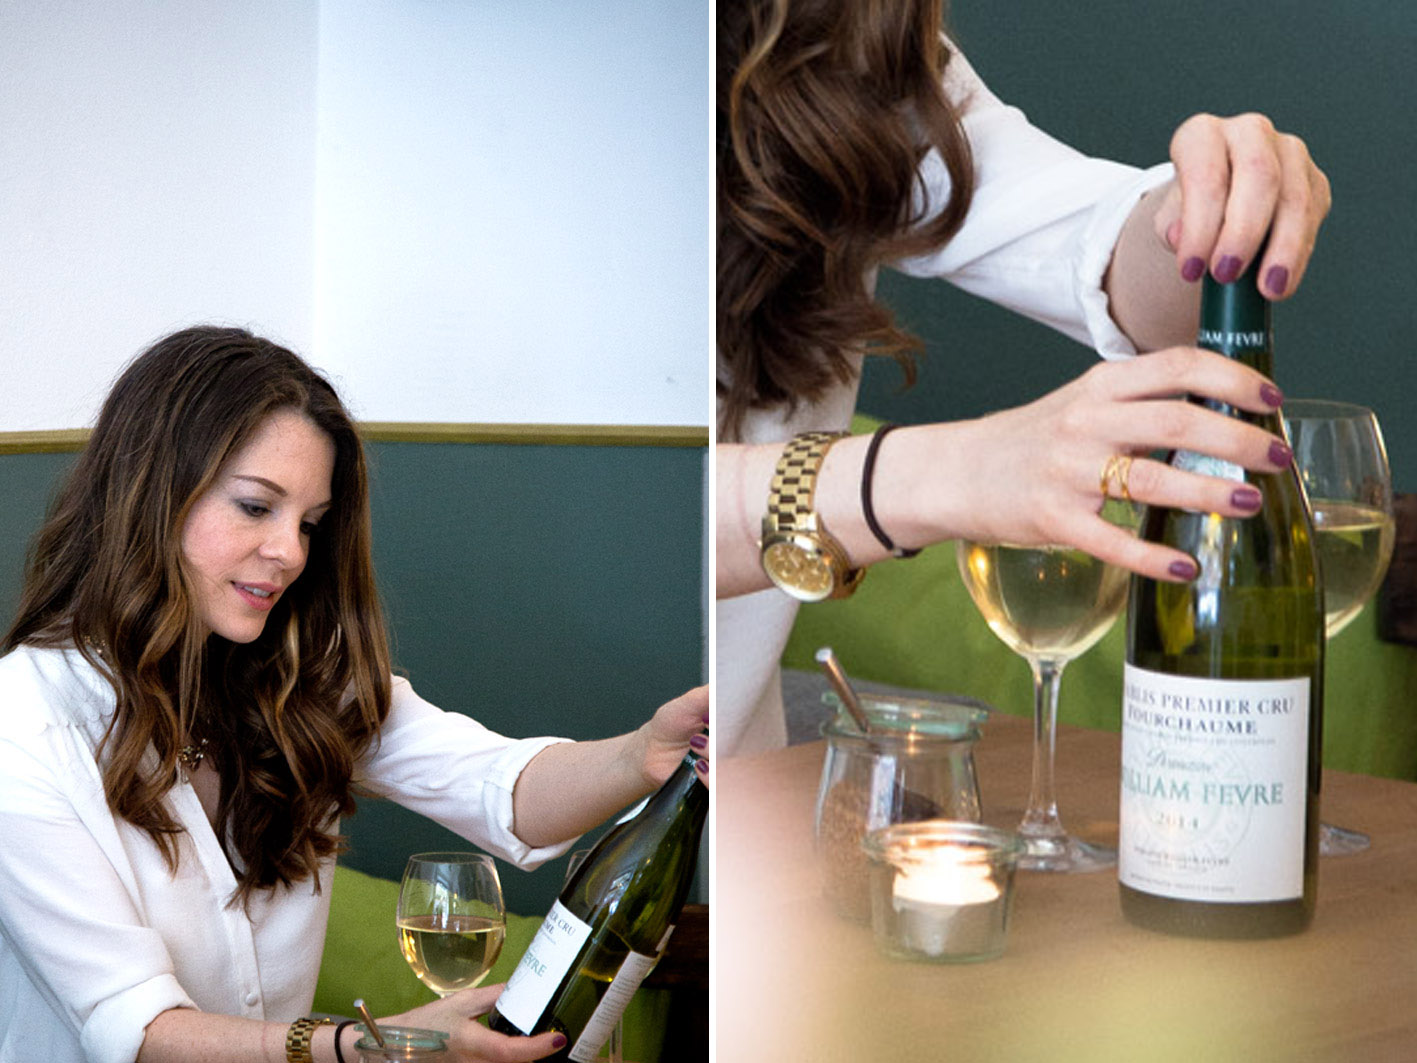 chablis weinflasche